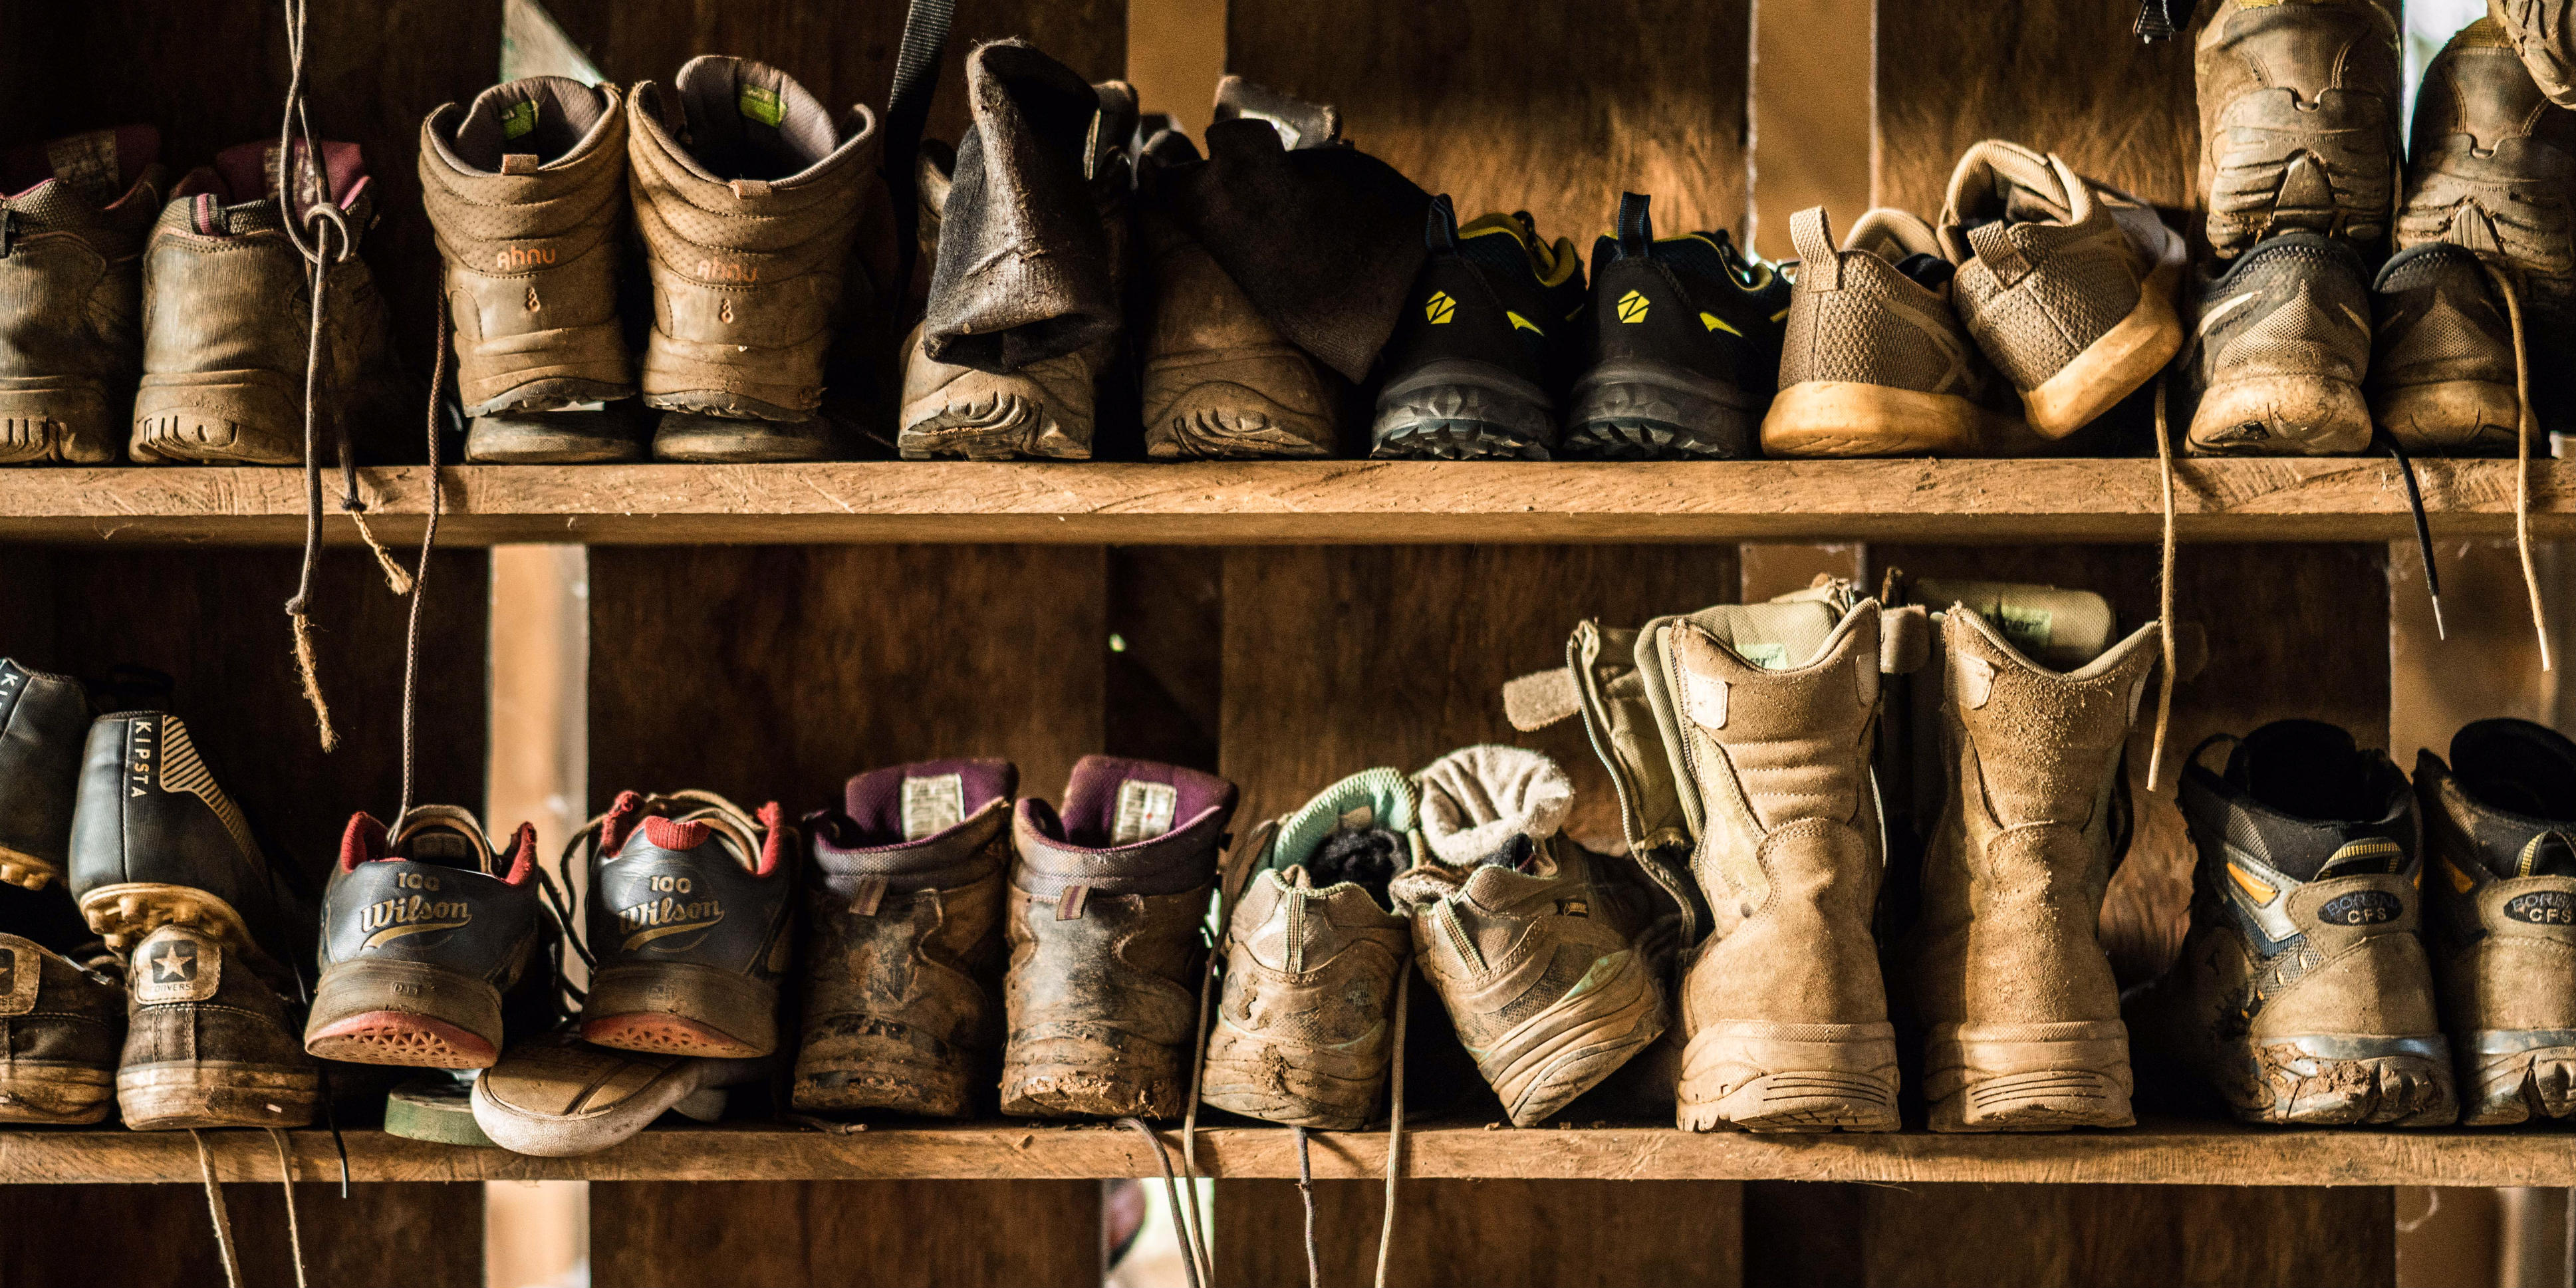 Your gap year travel checklist should include packing a comfortable pair of shoes, or hiking boots.